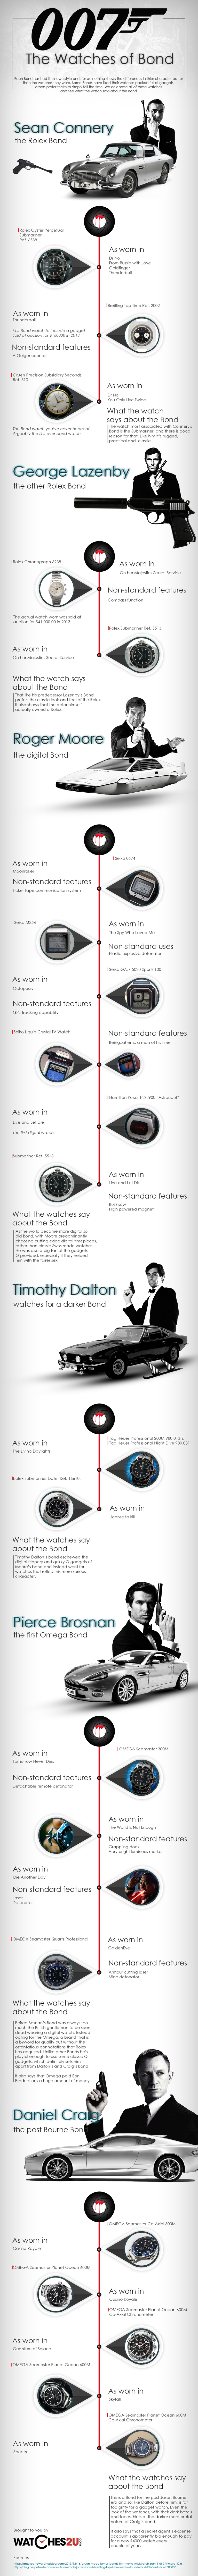 Infographic of Bond's Watches